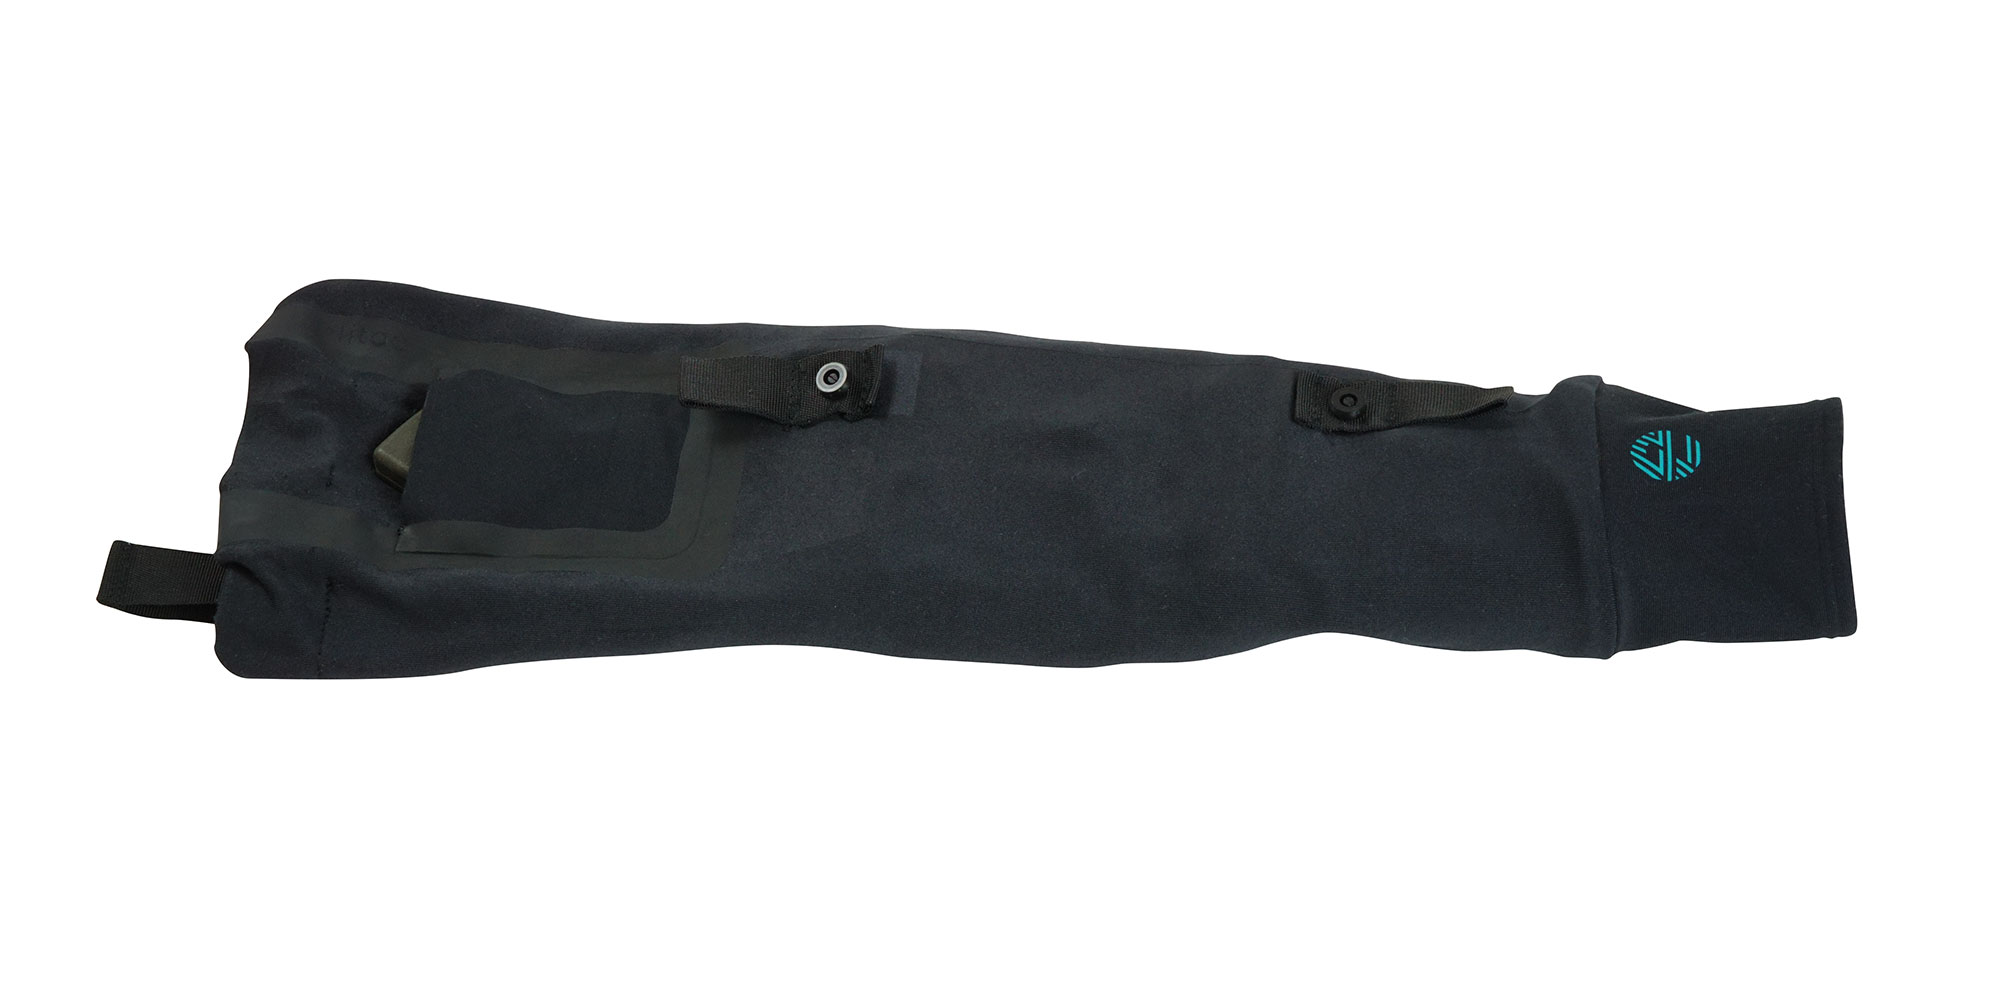 Haptic feedback sleeve lying flat